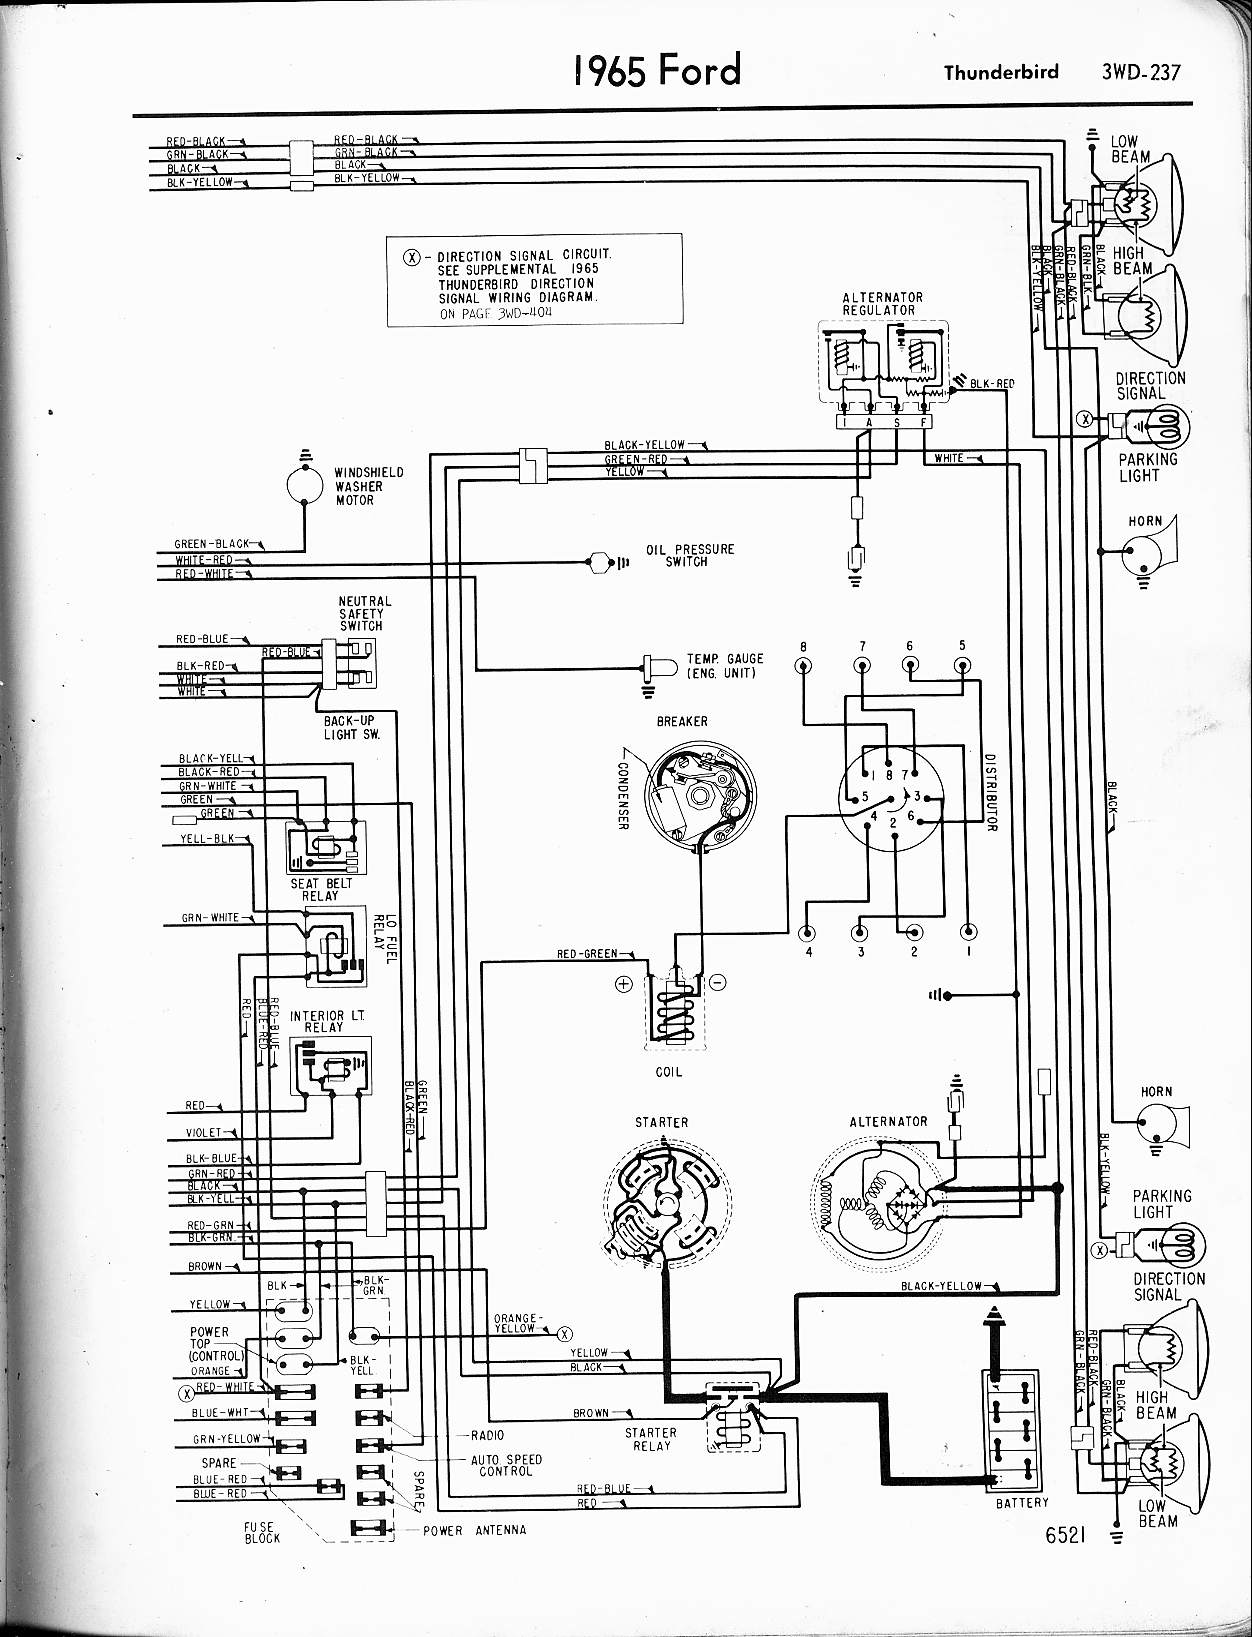 57-65 Ford Wiring Diagrams on buick regal wiring-diagram, ford f 450 wiring schematic, ford e-350 parts diagram, acura tl wiring-diagram, cadillac deville wiring-diagram, subaru outback wiring-diagram, ford e-350 fuse box diagram, ford 7 pin trailer wiring diagram, ford alternator wiring diagram, bmw x3 wiring-diagram, jeep patriot wiring-diagram, ford truck wiring diagrams, ford electrical diagram, ford super duty wiring diagram, 2004 chrysler sebring wiring-diagram, ford flex wiring diagram, ford aerostar wiring diagram, nissan quest wiring-diagram, ford radio wiring diagram, ford f-350 4x4 wiring diagrams,